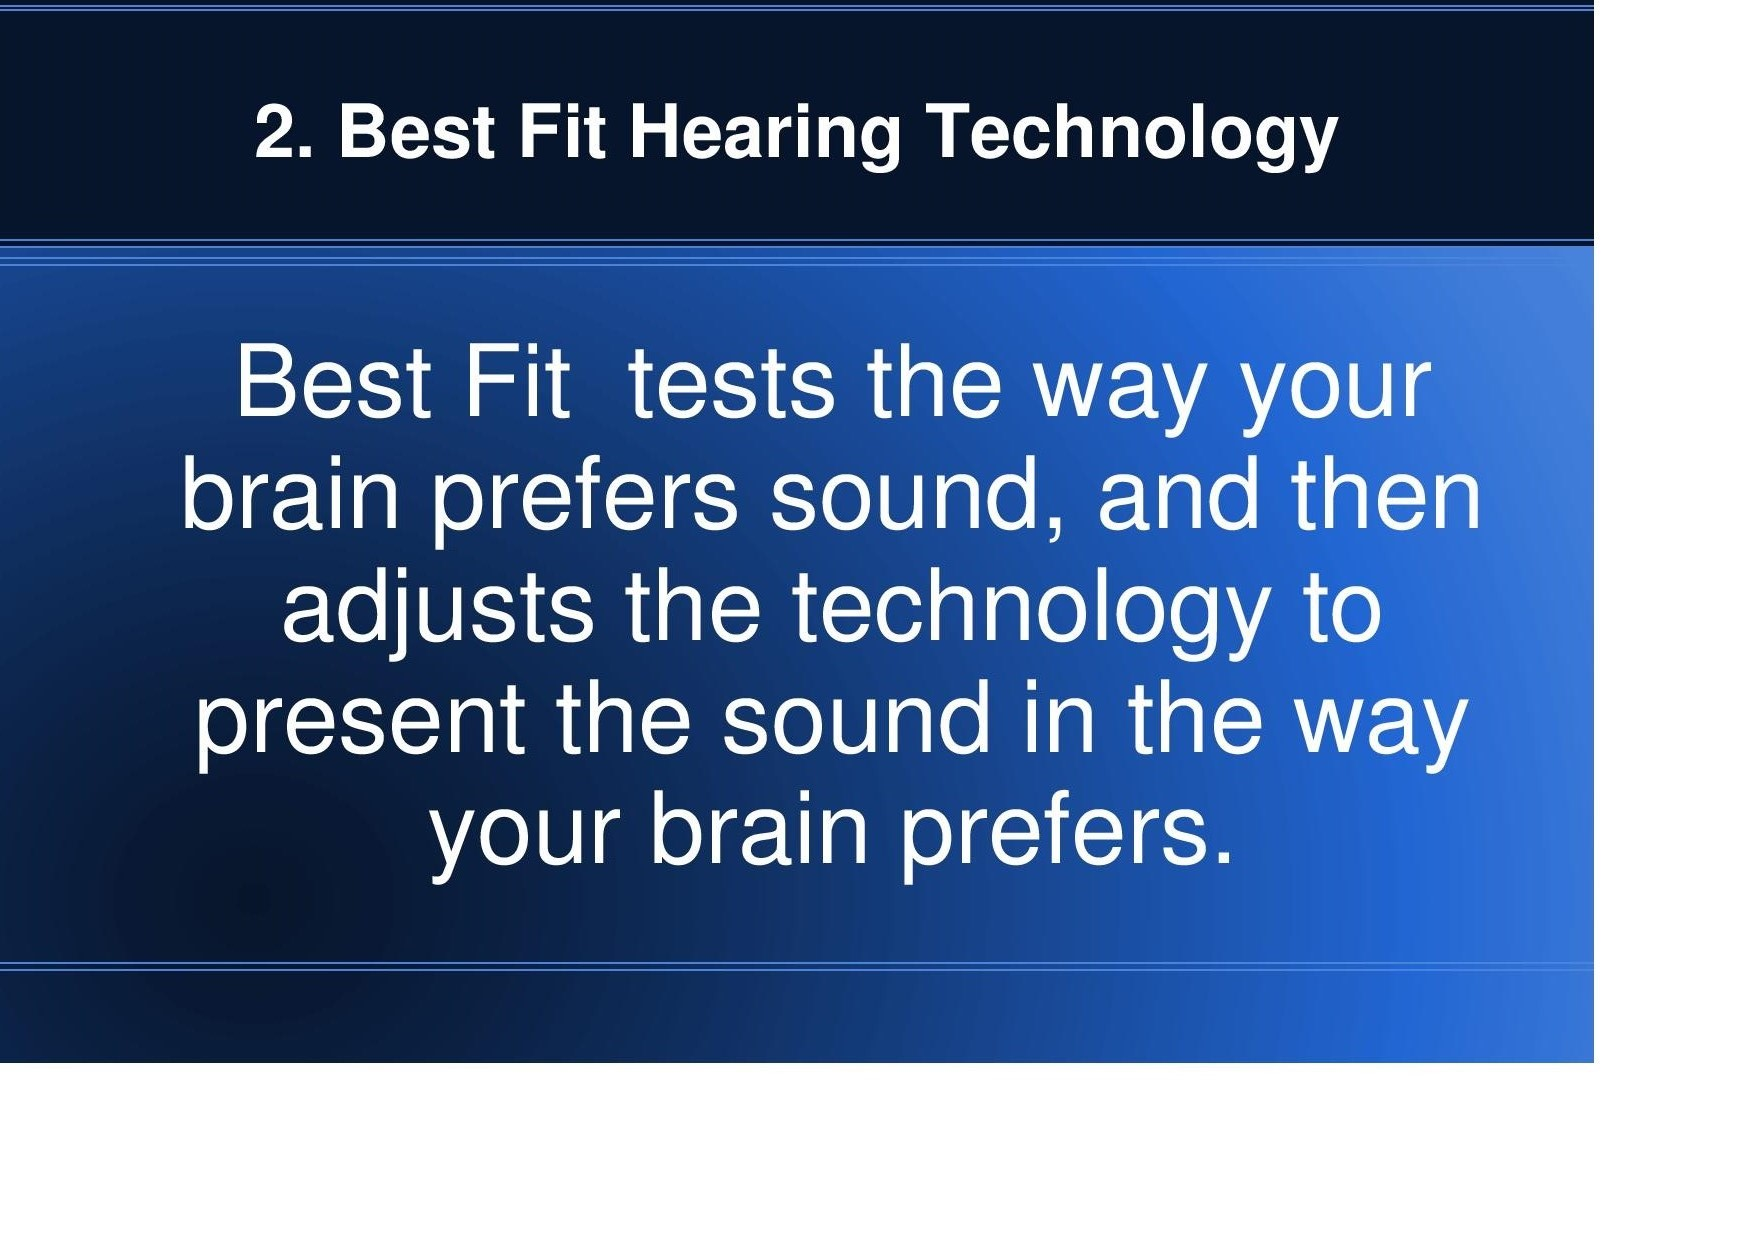 Web 3 ways to combat hearing loss03.jpg